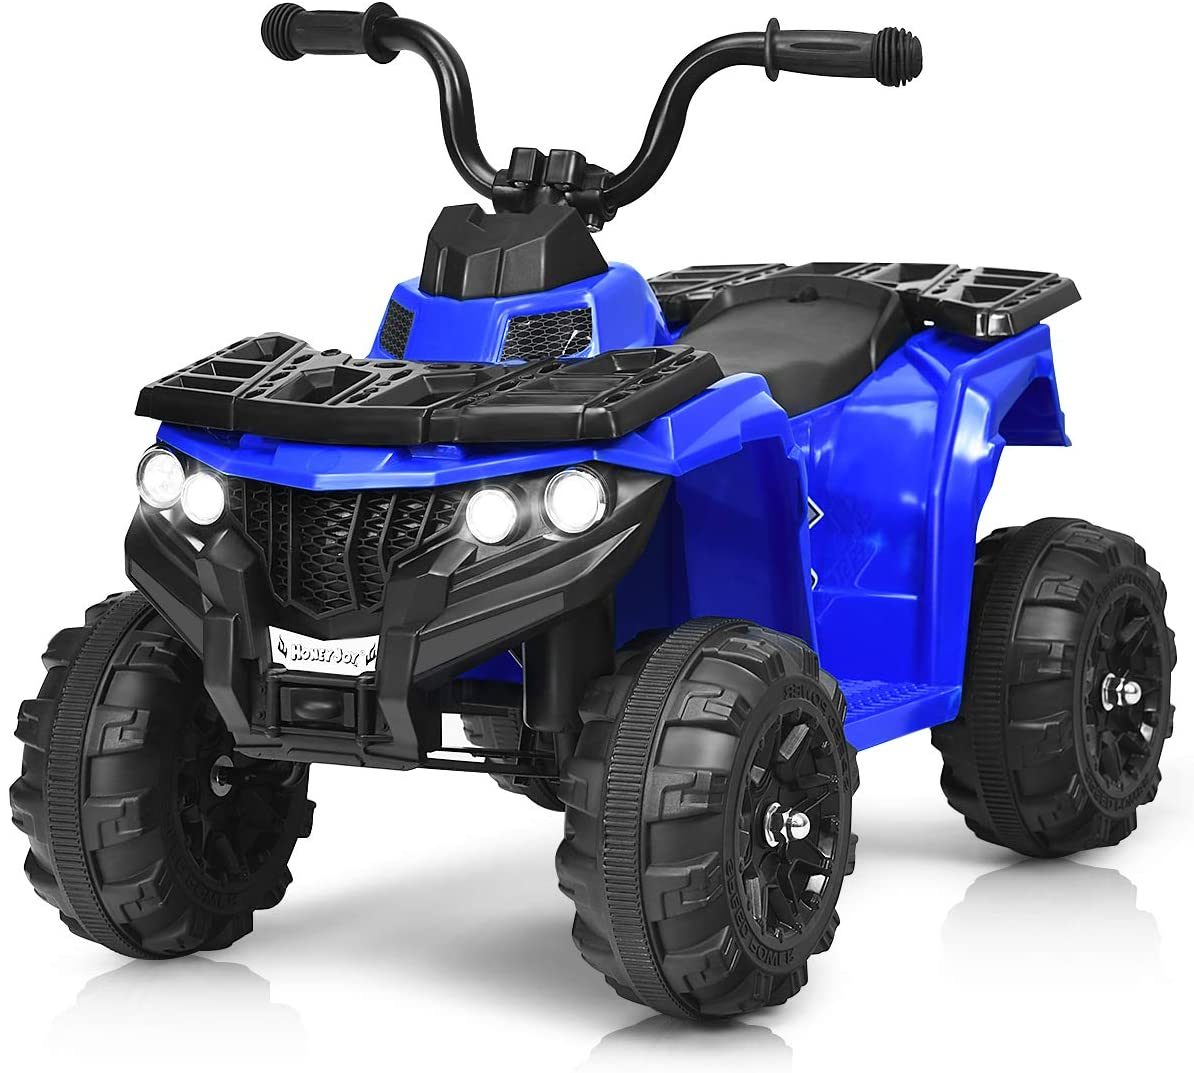 HONEY JOY Kids Ride On ATV, 4-Wheeler Quad, 6V Battery Powered Electric Vehicle with Headlights, Music, MP3, USB, AUX, Adjustable Volume (Blue)